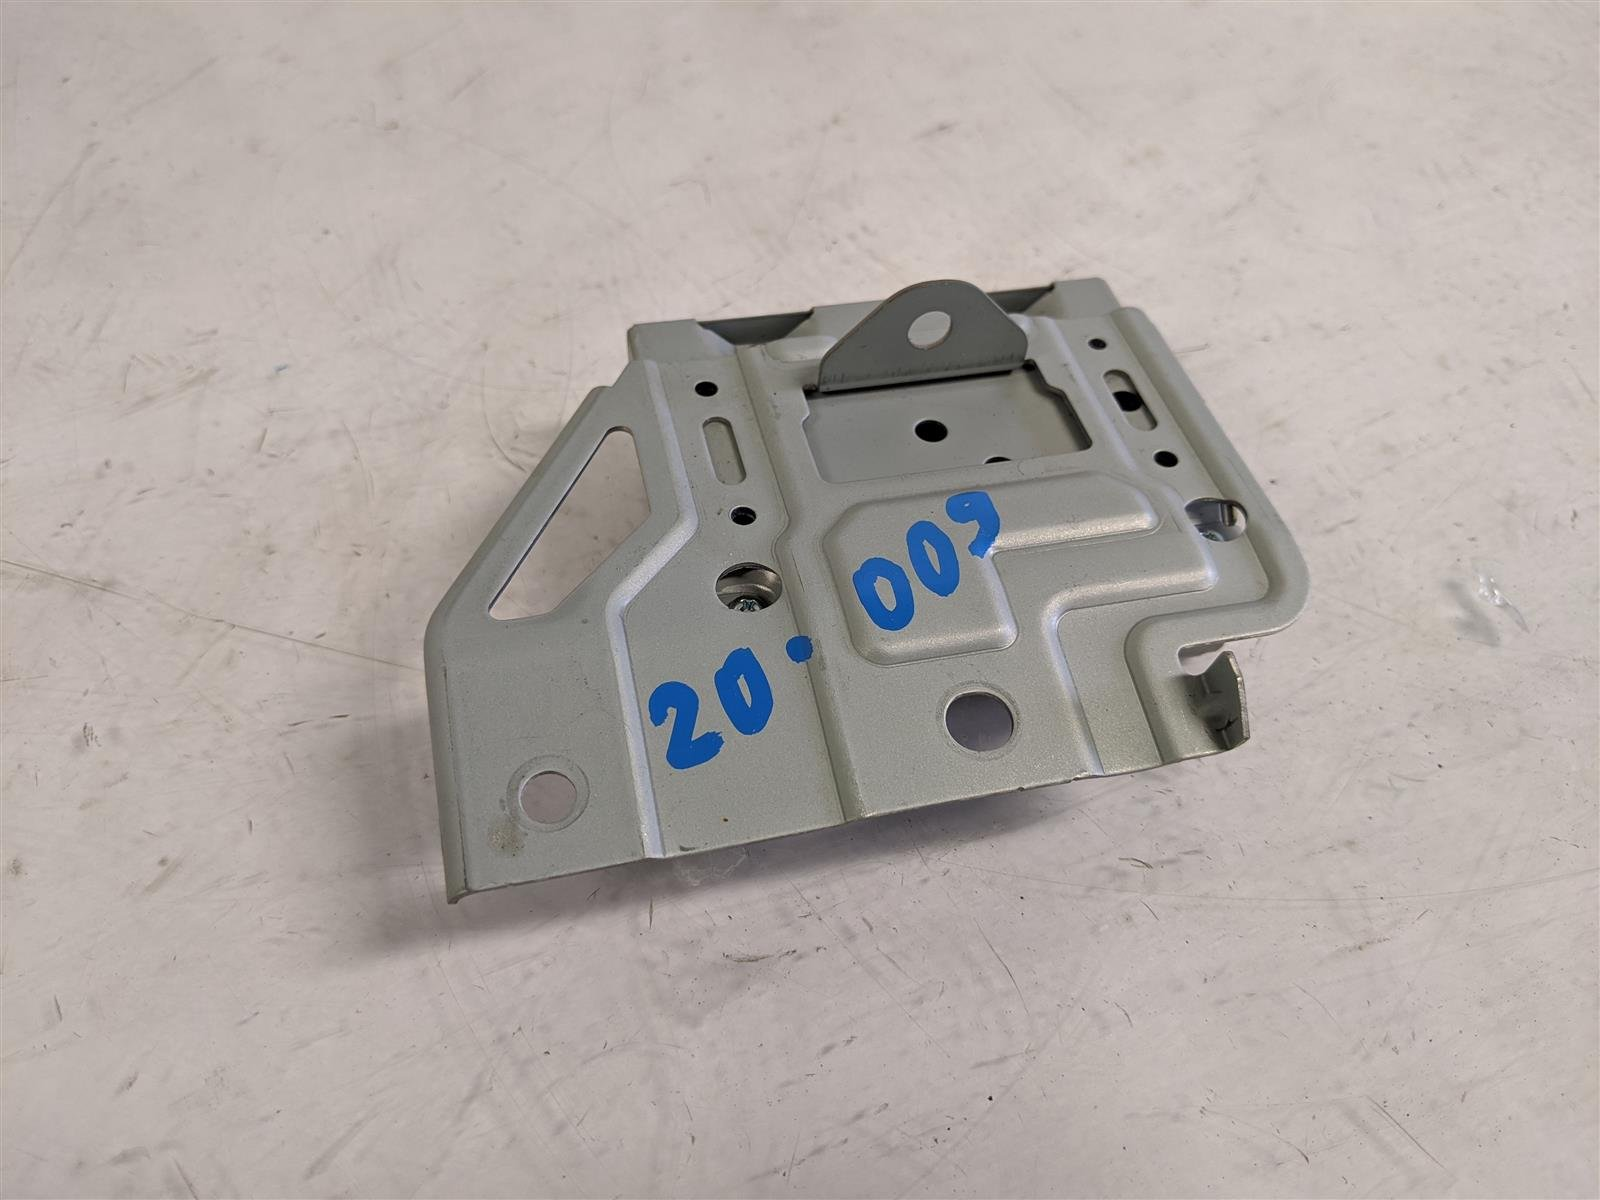 2017 Acura TLX Body Control Unit Replacement